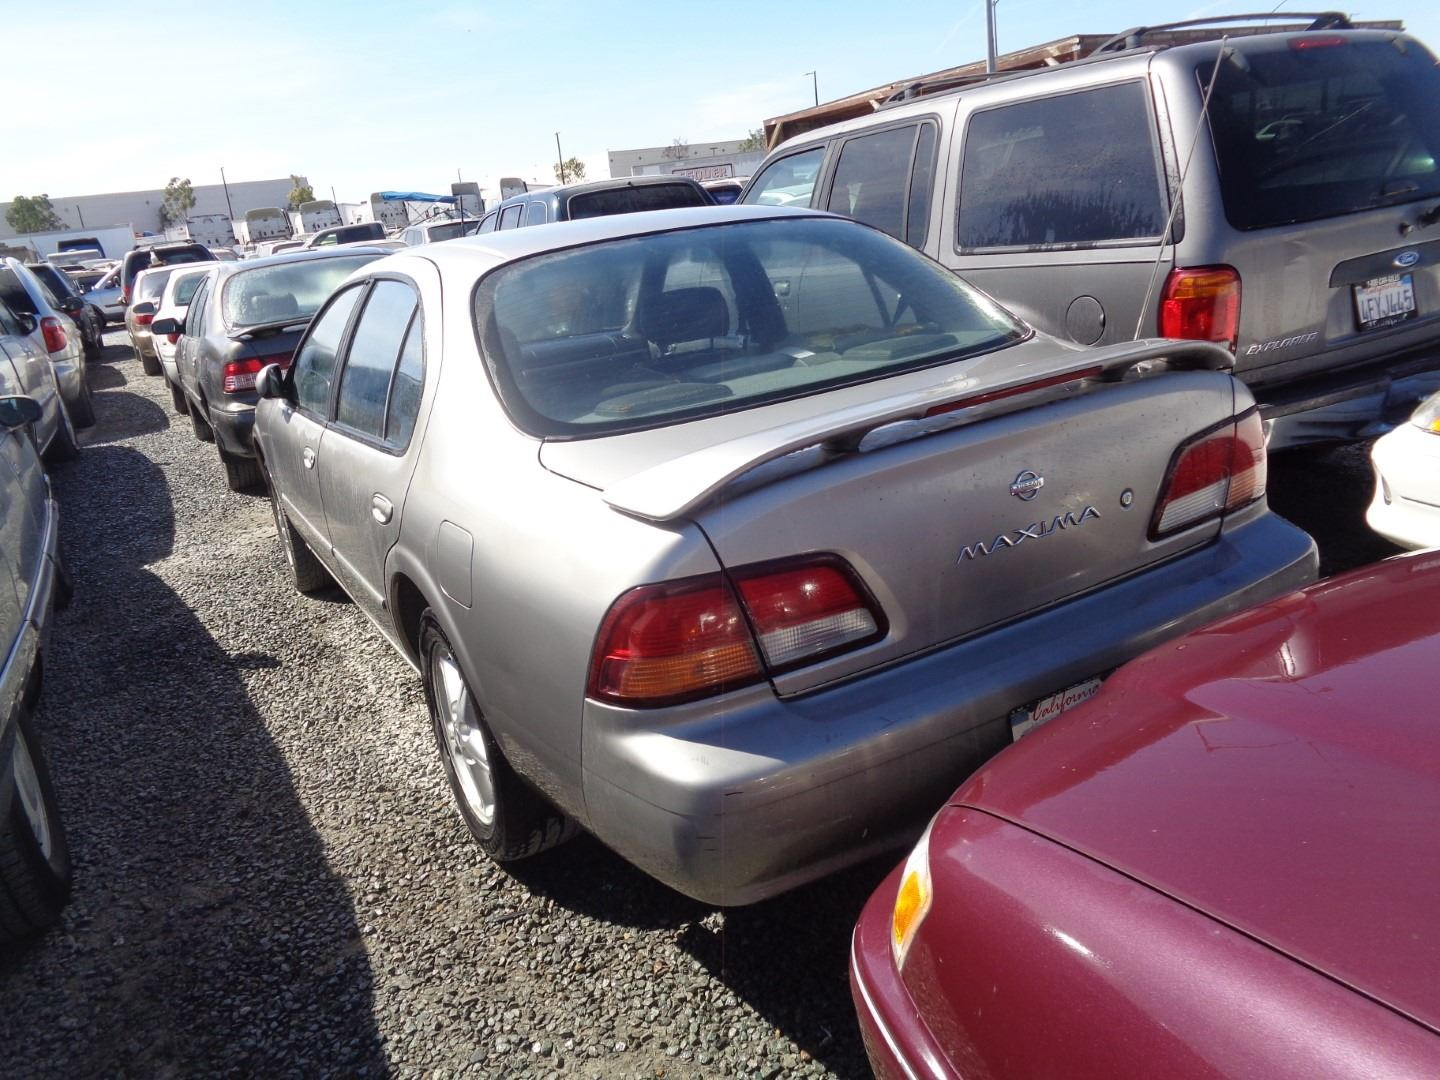 medium resolution of  image 4 nissan maxima 1999 t donation